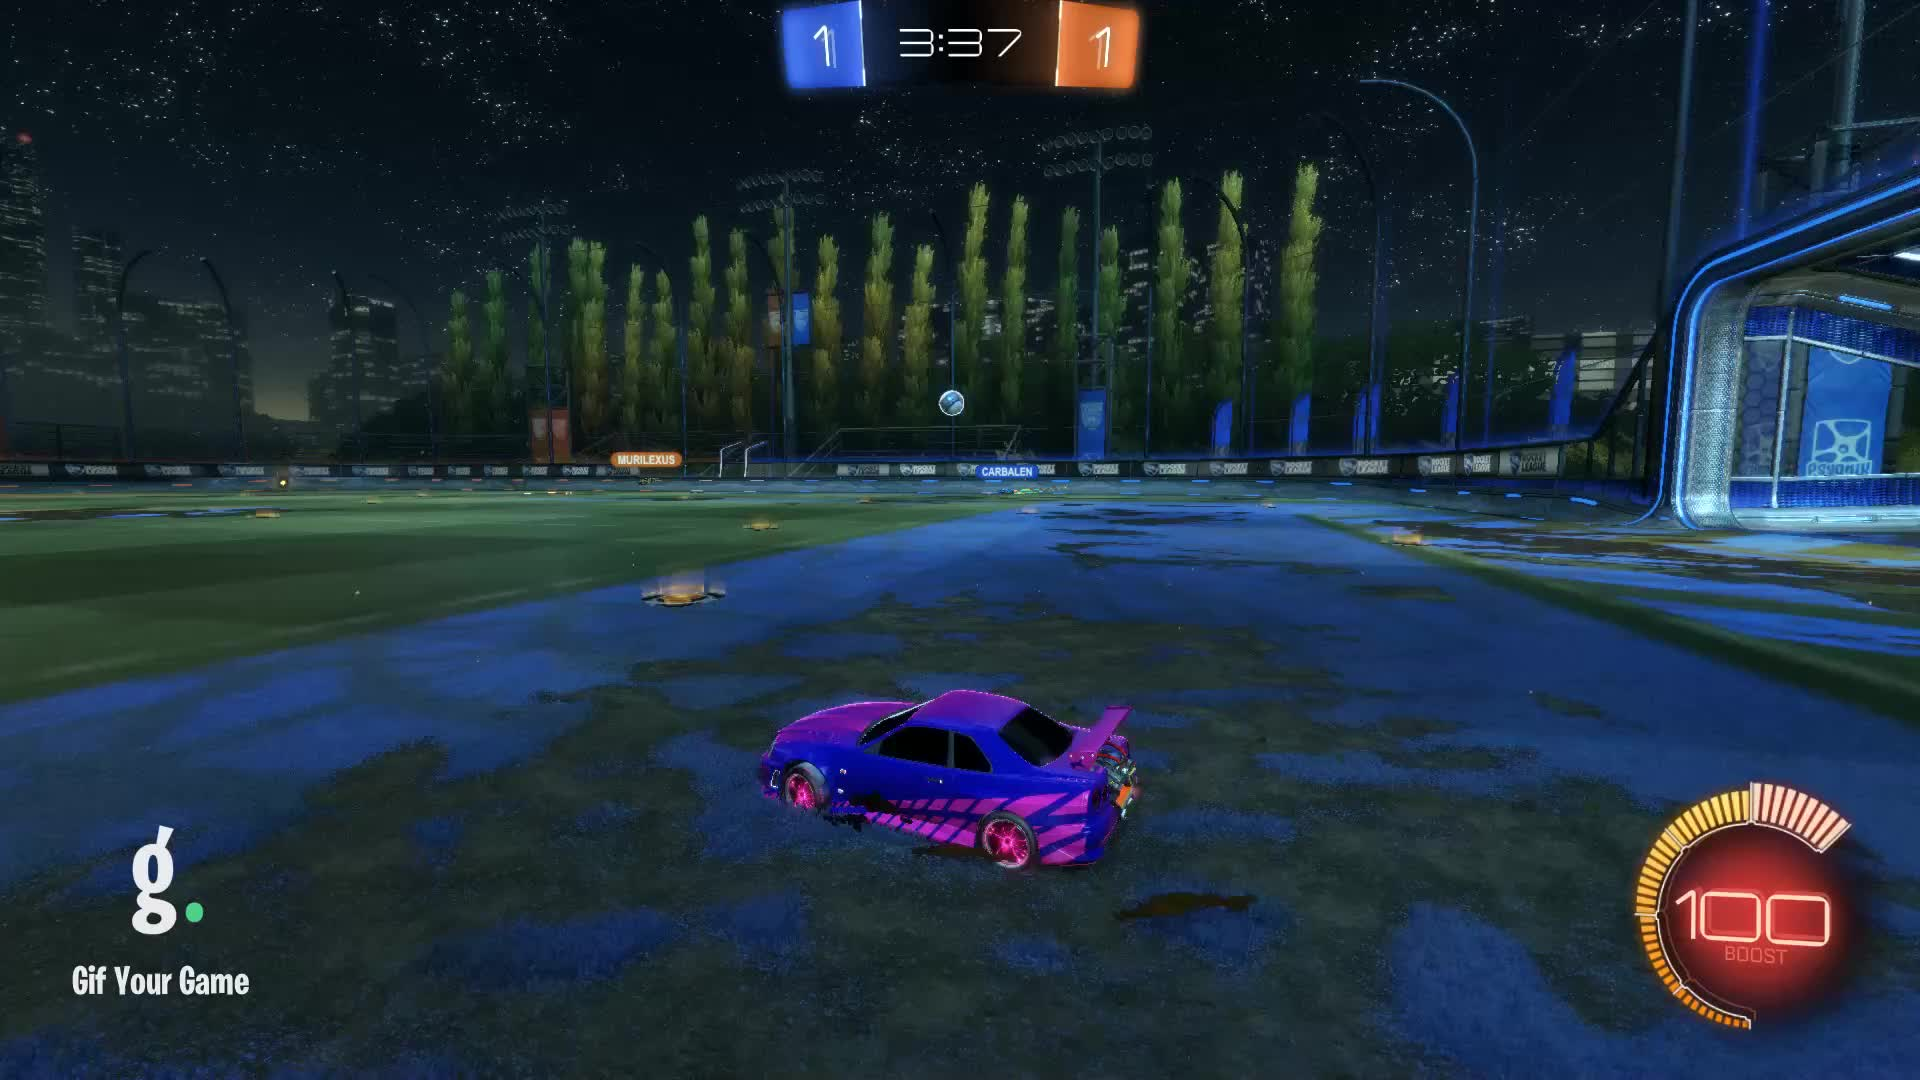 Gif Your Game, GifYourGame, Goal, RNZ, Rocket League, RocketLeague, Goal 3: RNZ GIFs